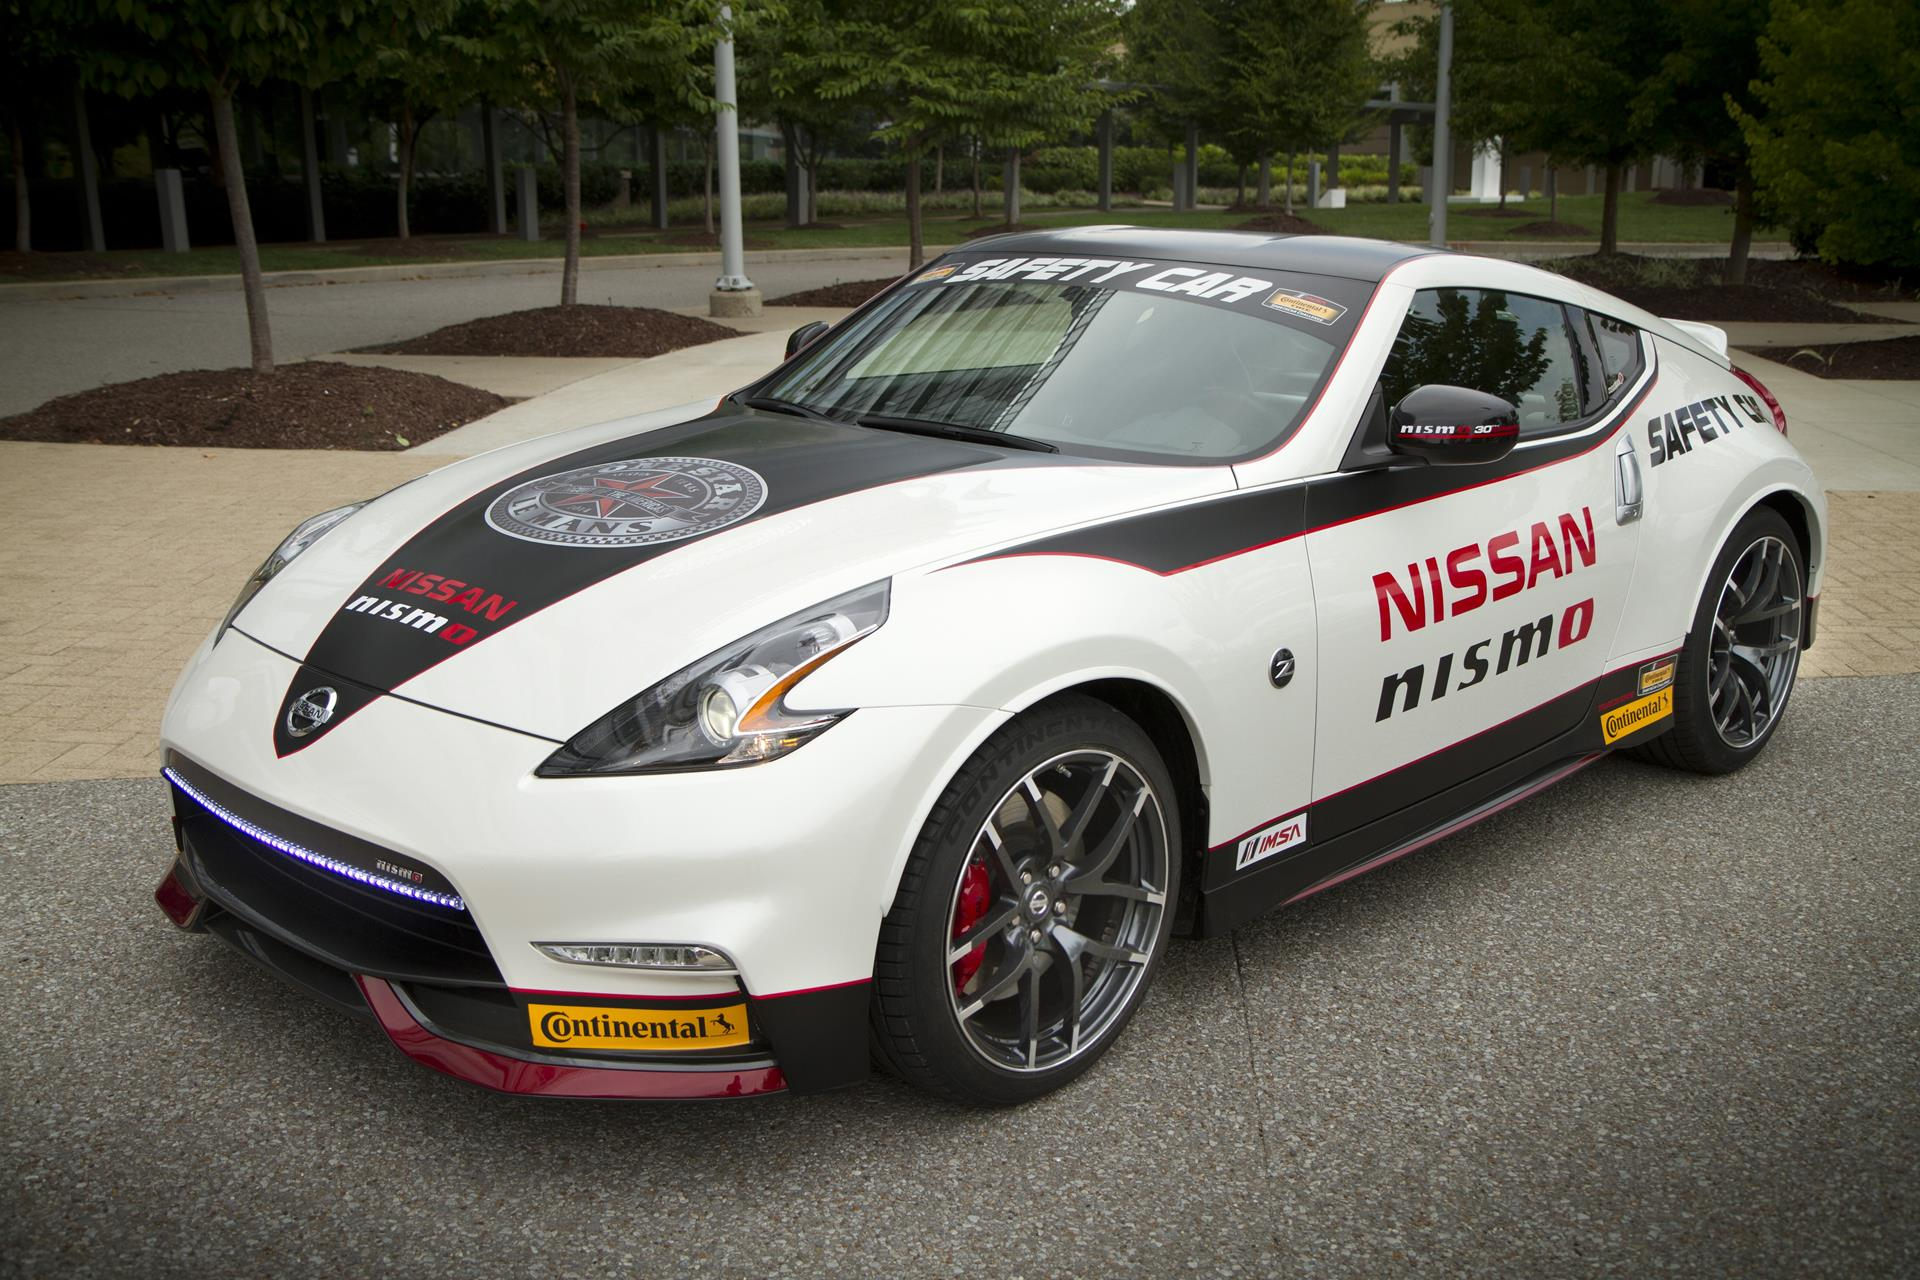 2015 nissan 370z nismo safety car news and information. Black Bedroom Furniture Sets. Home Design Ideas